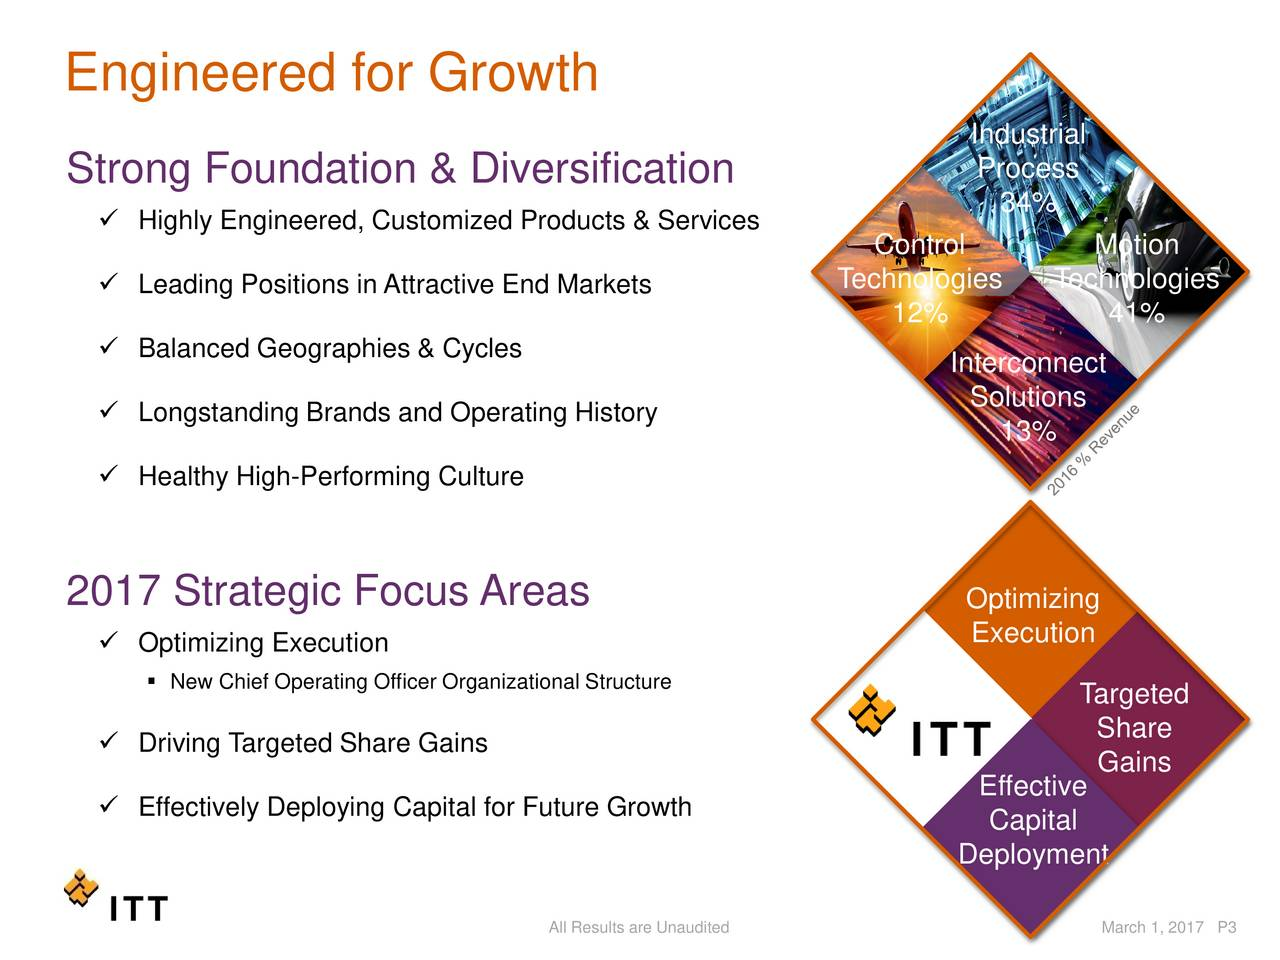 Industrial Strong Foundation & Diversification Process 34% Highly Engineered, Customized Products & Services Control Motion Leading Positions in Attractive EndMarkets Technologies Technologies 12% 41% Balanced Geographies & Cycles Interconnect Solutions Longstanding Brands and Operating History 13% Healthy High-Performing Culture 2017 Strategic Focus Areas Optimizing Optimizing Execution Execution New Chief Operating Officer Organizational Structure Targeted Share Driving Targeted Share Gains Gains Effective Effectively Deploying Capital for Future Growth Capital Deployment All Results are Unaudited March 1, 2017 P3